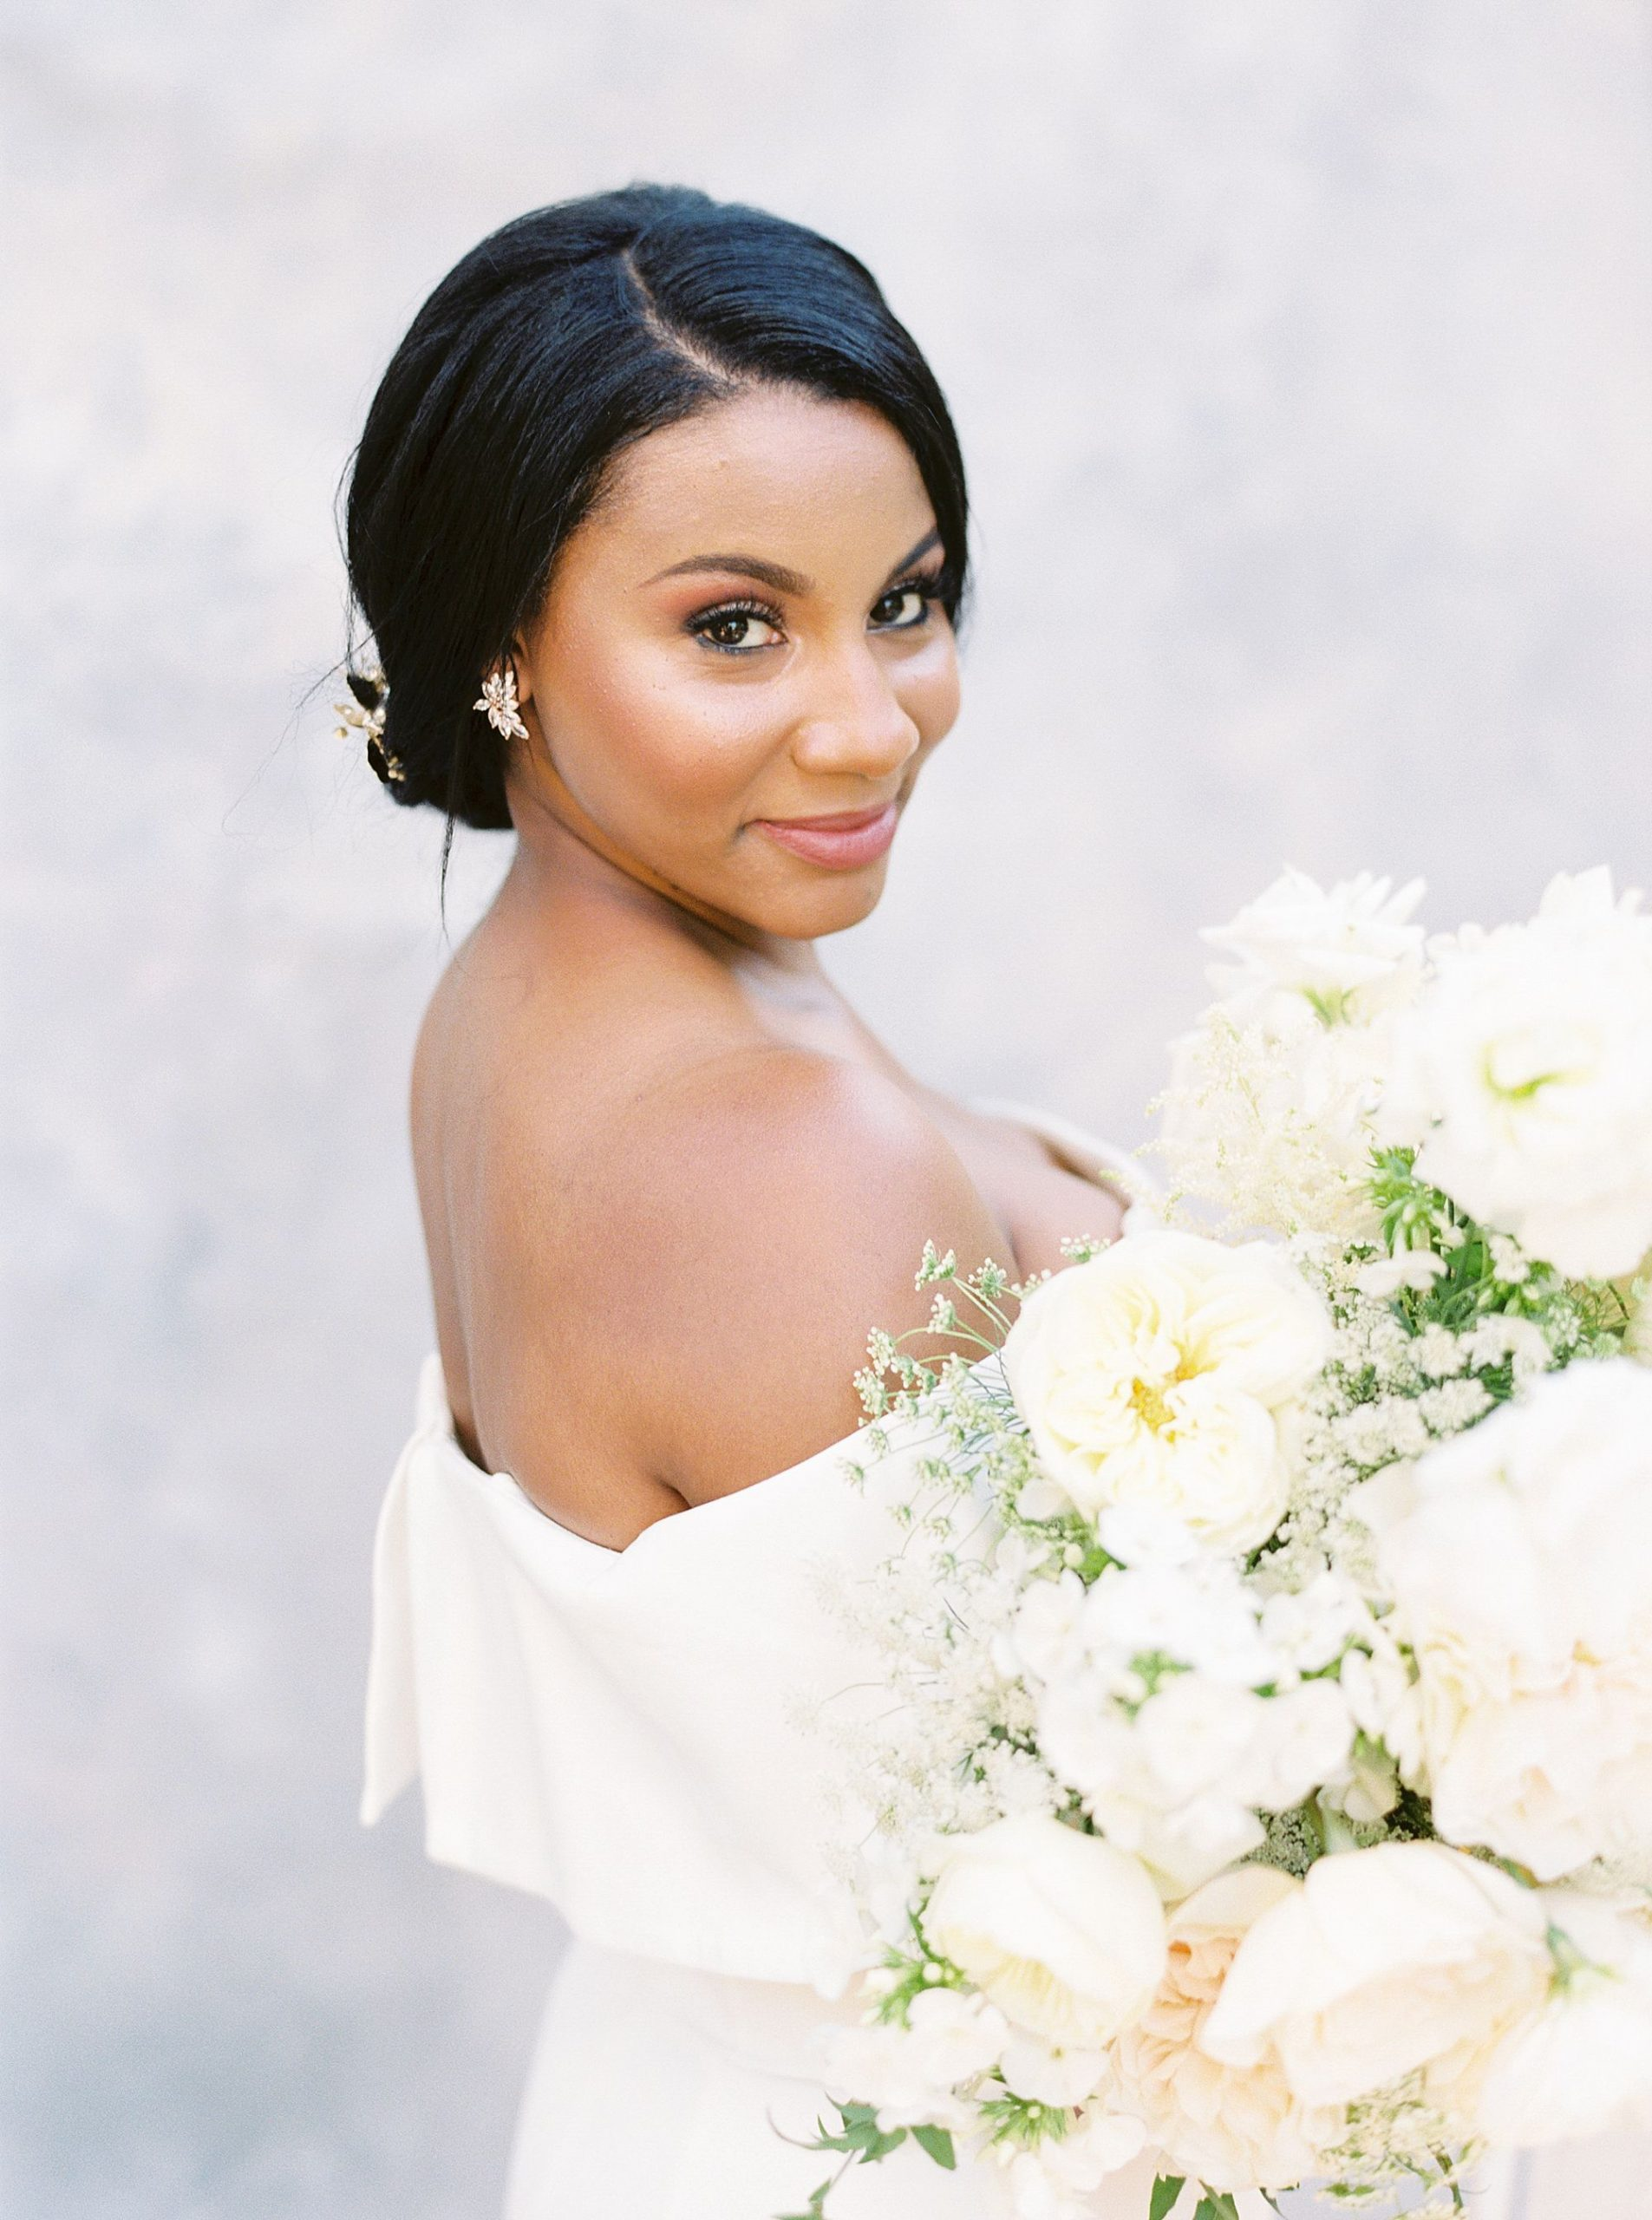 Park Winters Micro-Wedding Inspiration on Style Me Pretty - Stephanie Teague Events - Ashley Baumgartner - Park Winters Wedding - Black Tie Wedding - Micro-Wedding Sacramento Photographer_0058.jpg